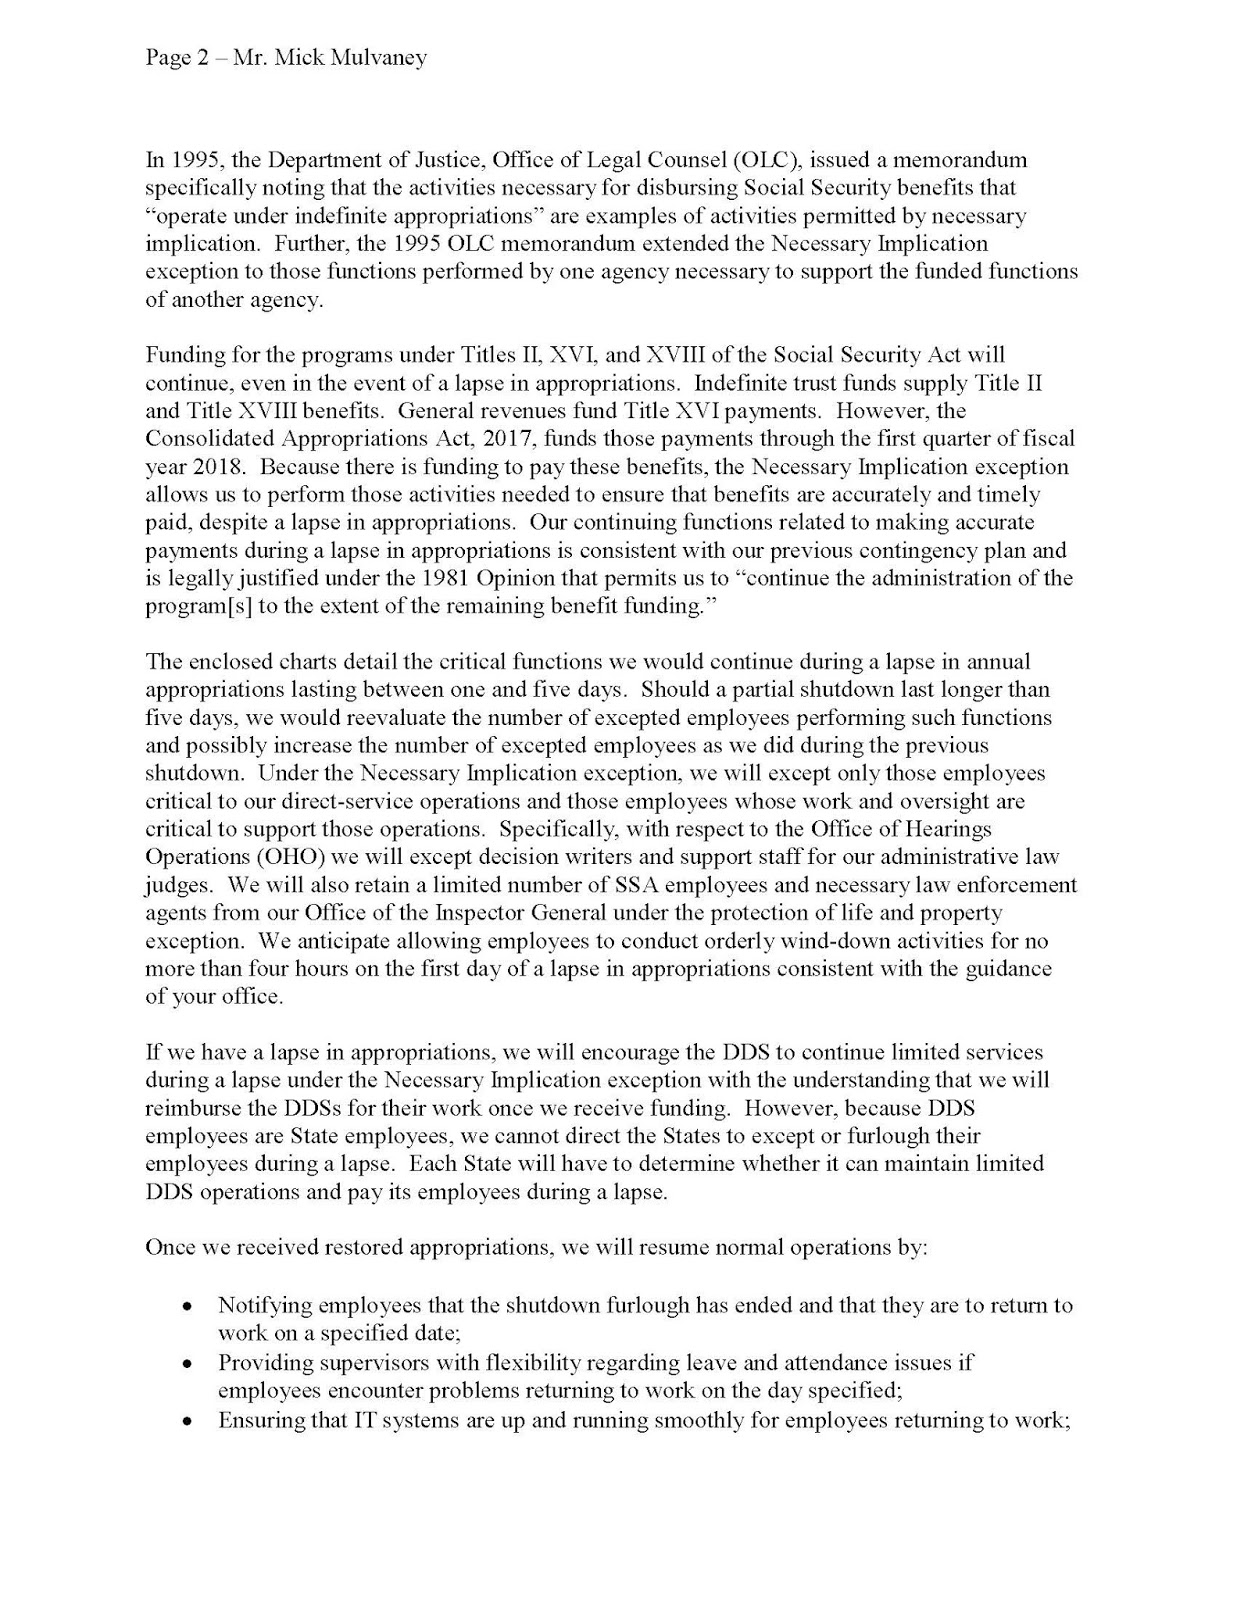 social security benefit letter 2018 social security news social security s shutdown plan 21337 | contingency plan Page 2